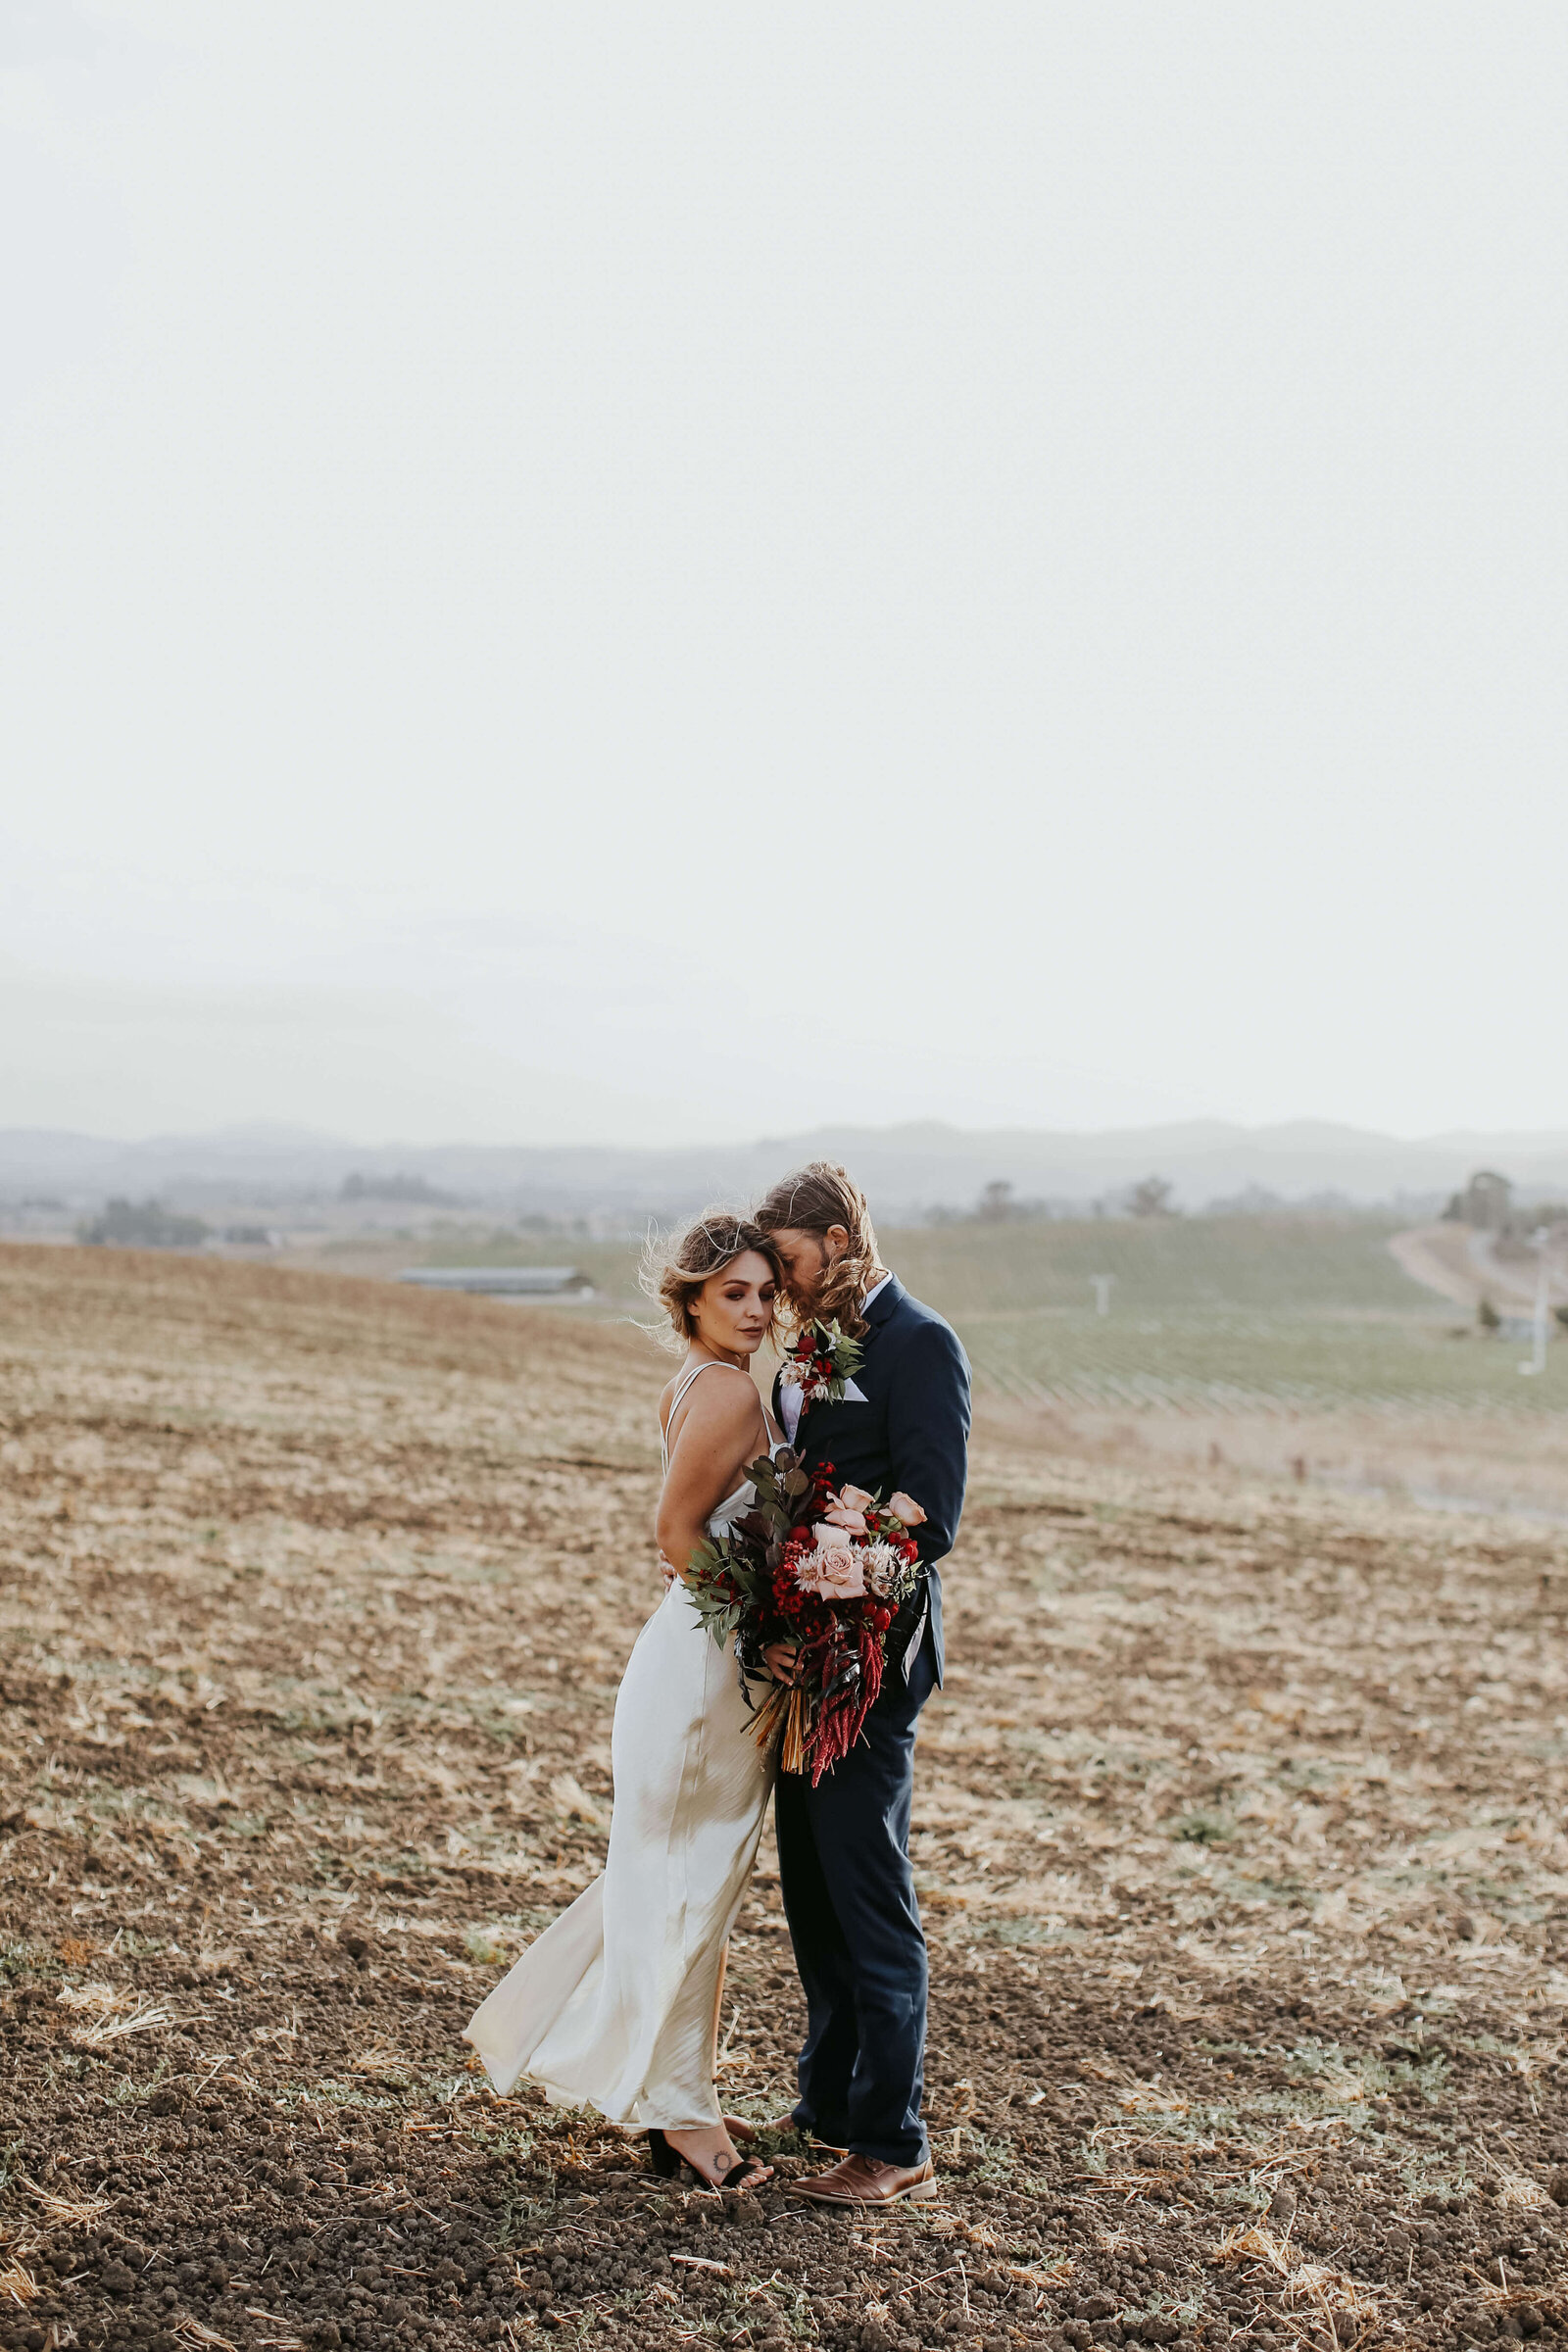 Penngrove-california-elopement-modern-bohemian-sonoma-county-elopement-events-by-gianna-somona-wedding-planner-8